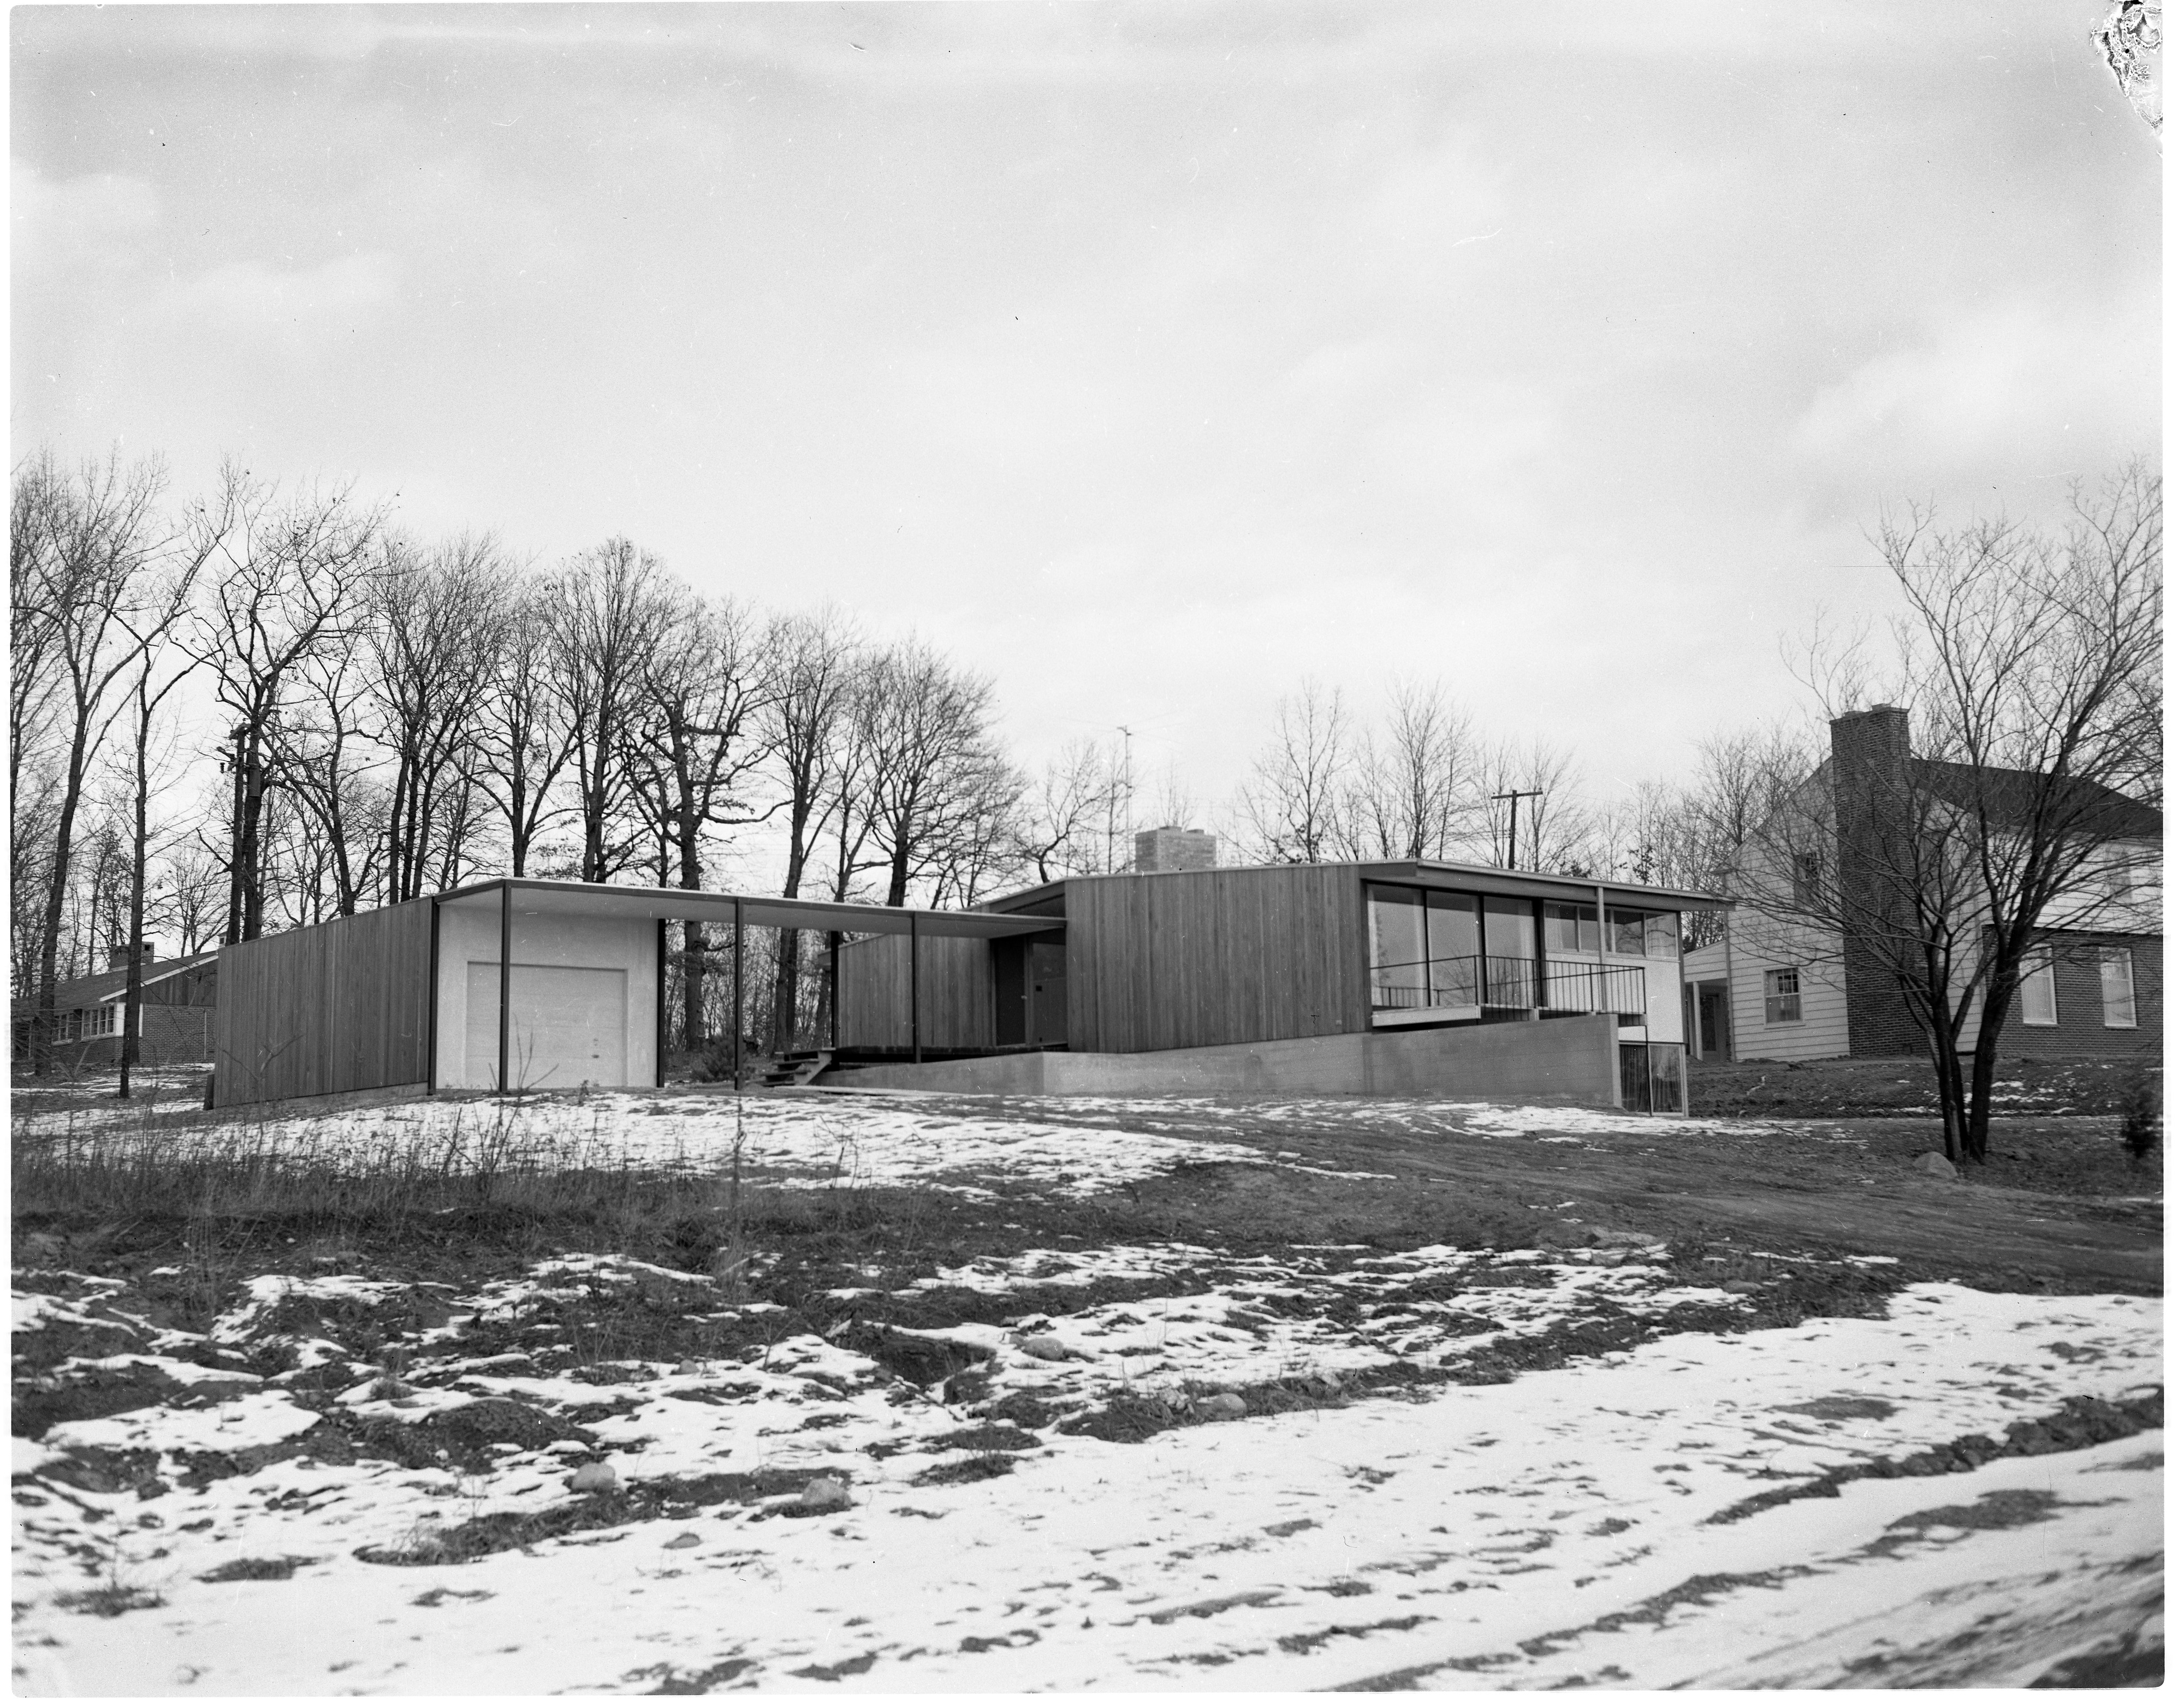 Metcalf Award-Winning Design Features Peaked Roof and Cedar Exterior, February 1955 image